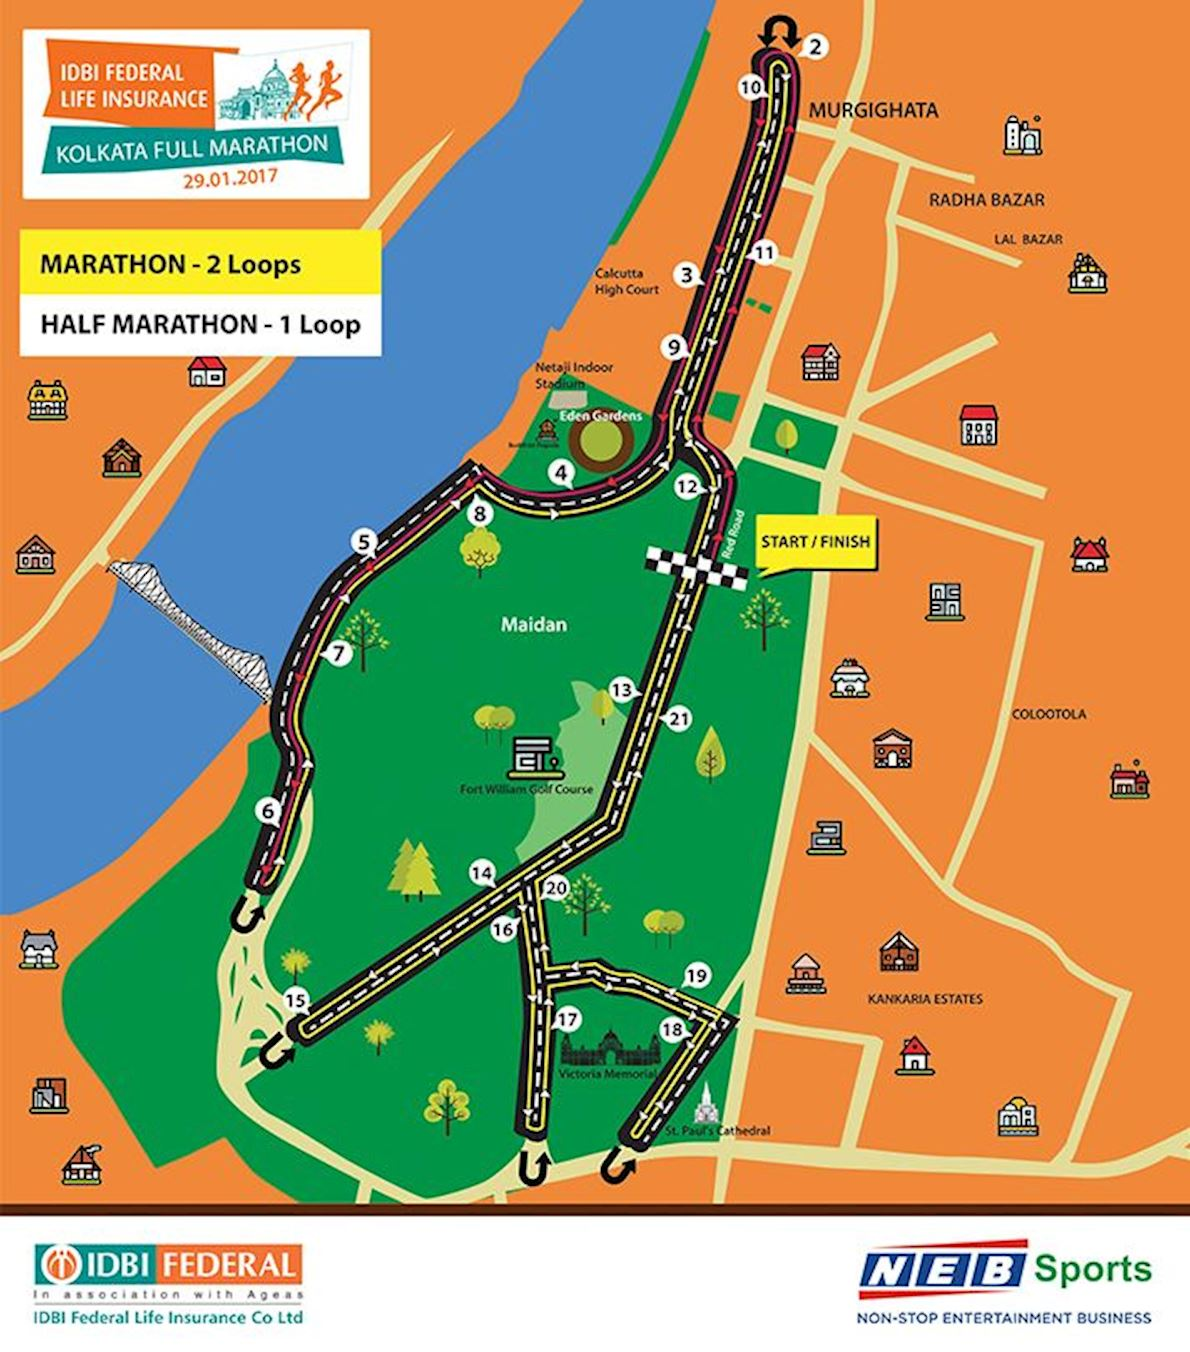 IDBI Federal Life Insurance Kolkata Full Marathon Route Map